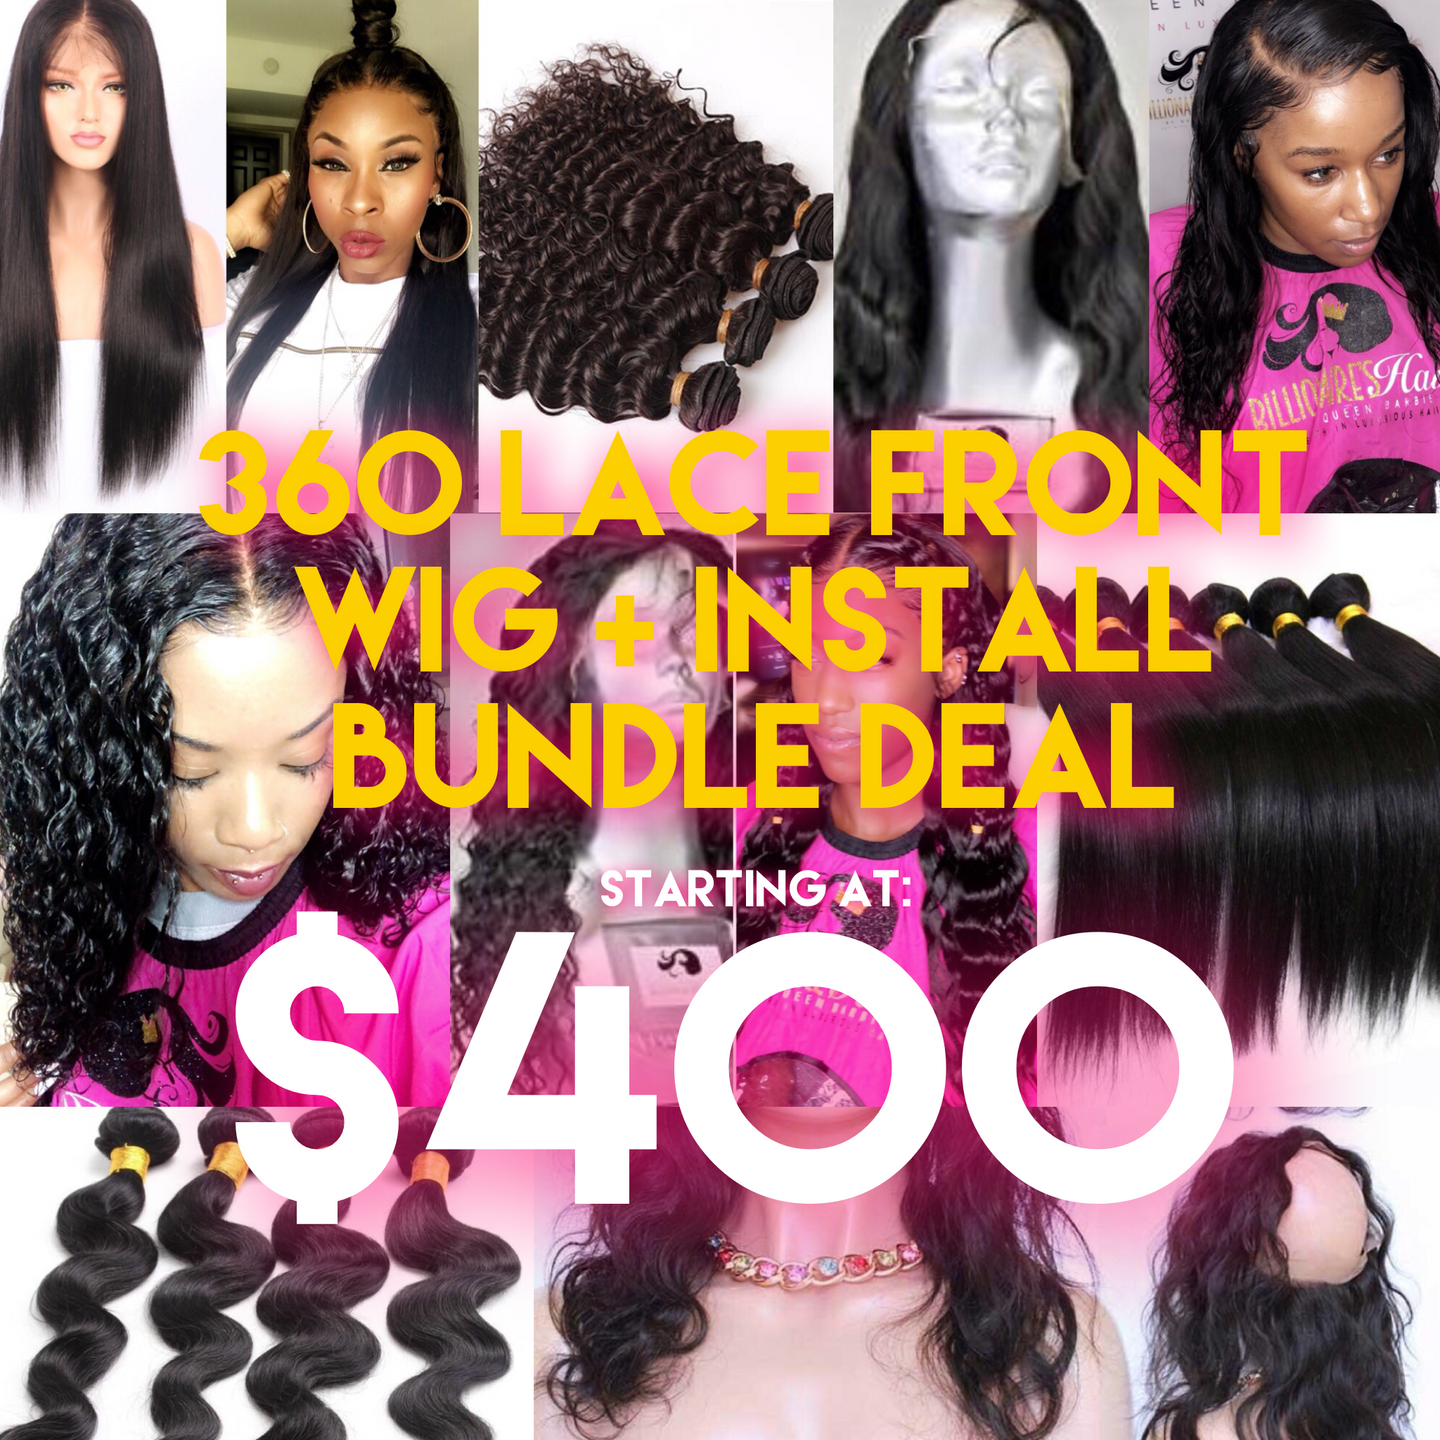 360 Lace Front Wig + Install Bundle Deal